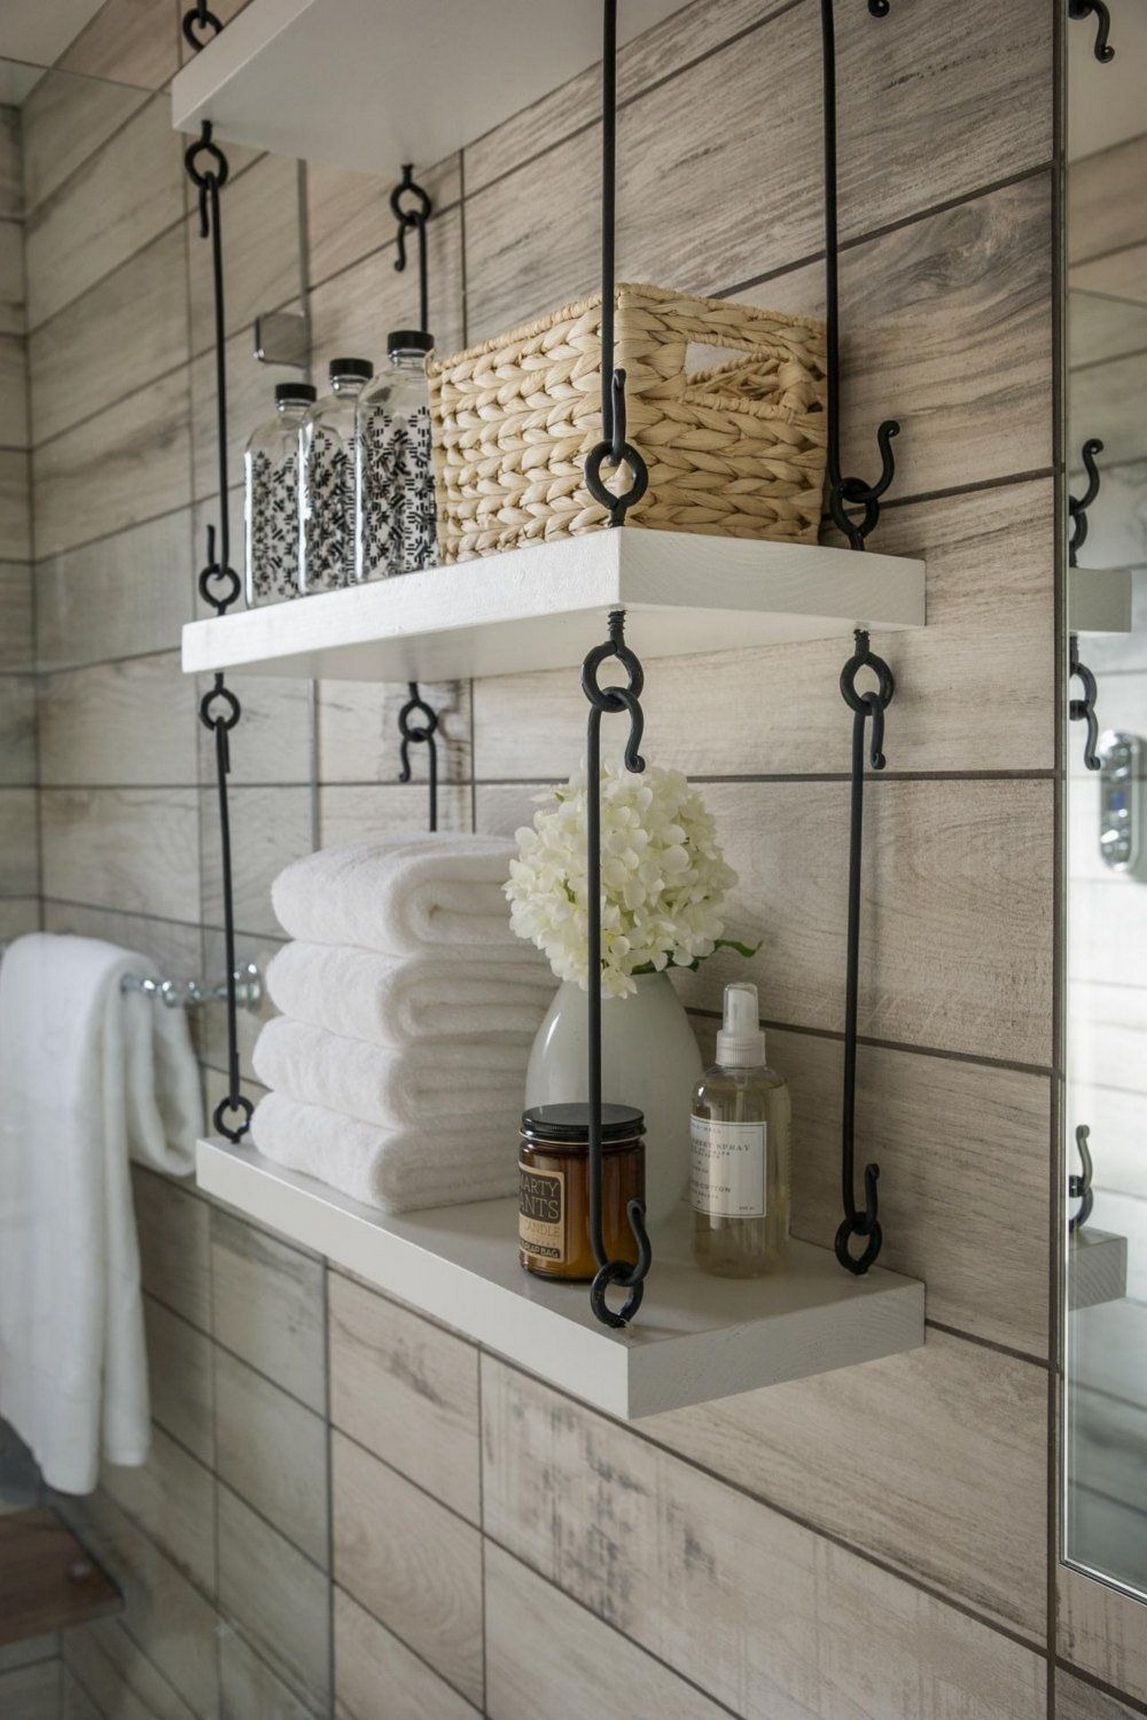 49 Small Bathroom Storage Decoation Ideas Here's How To Get All The Space You Need 33